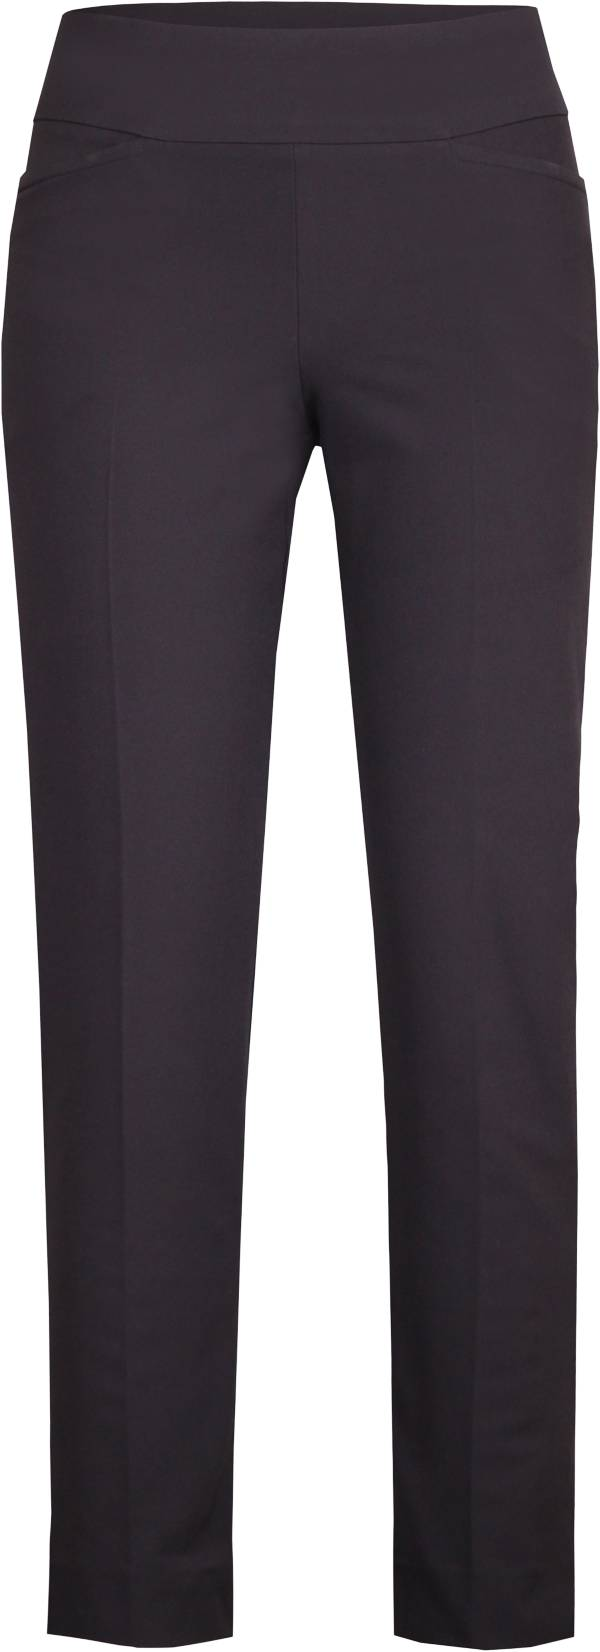 Tail Women's Mulligan Golf Ankle Pants product image